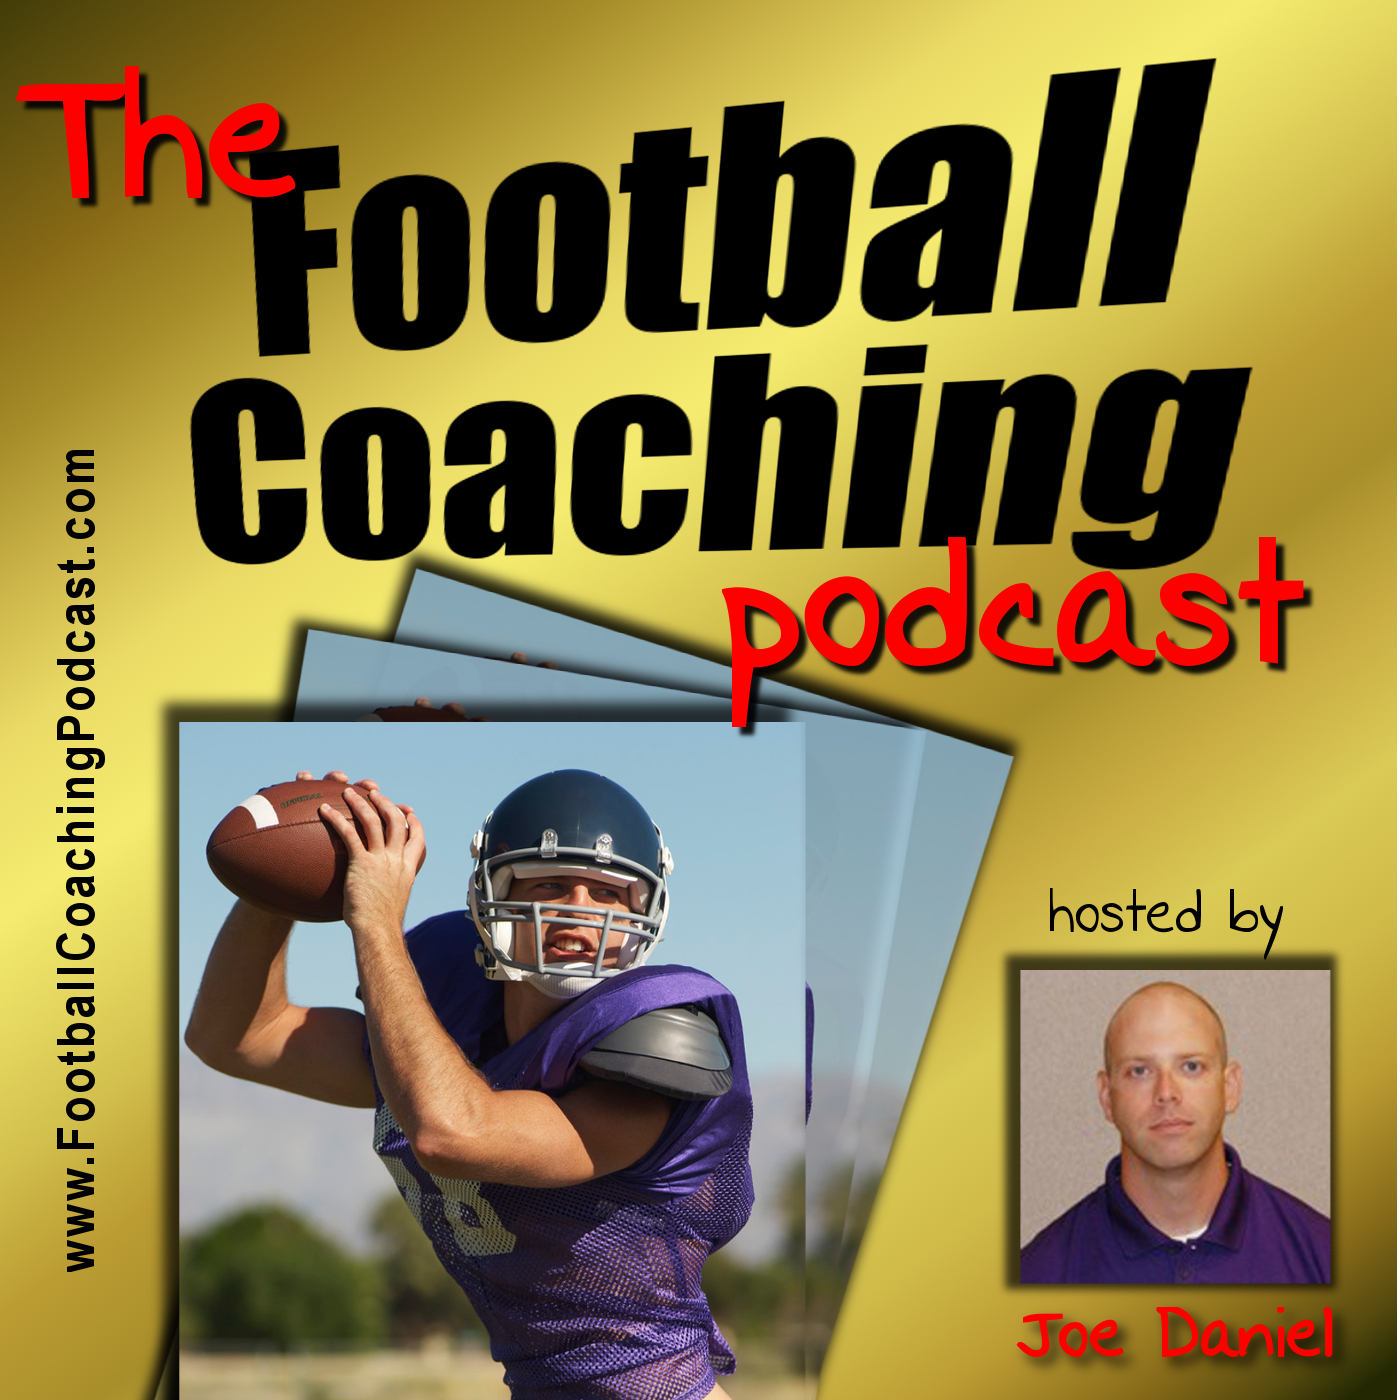 The Football Coaching Podcast with Joe Daniel